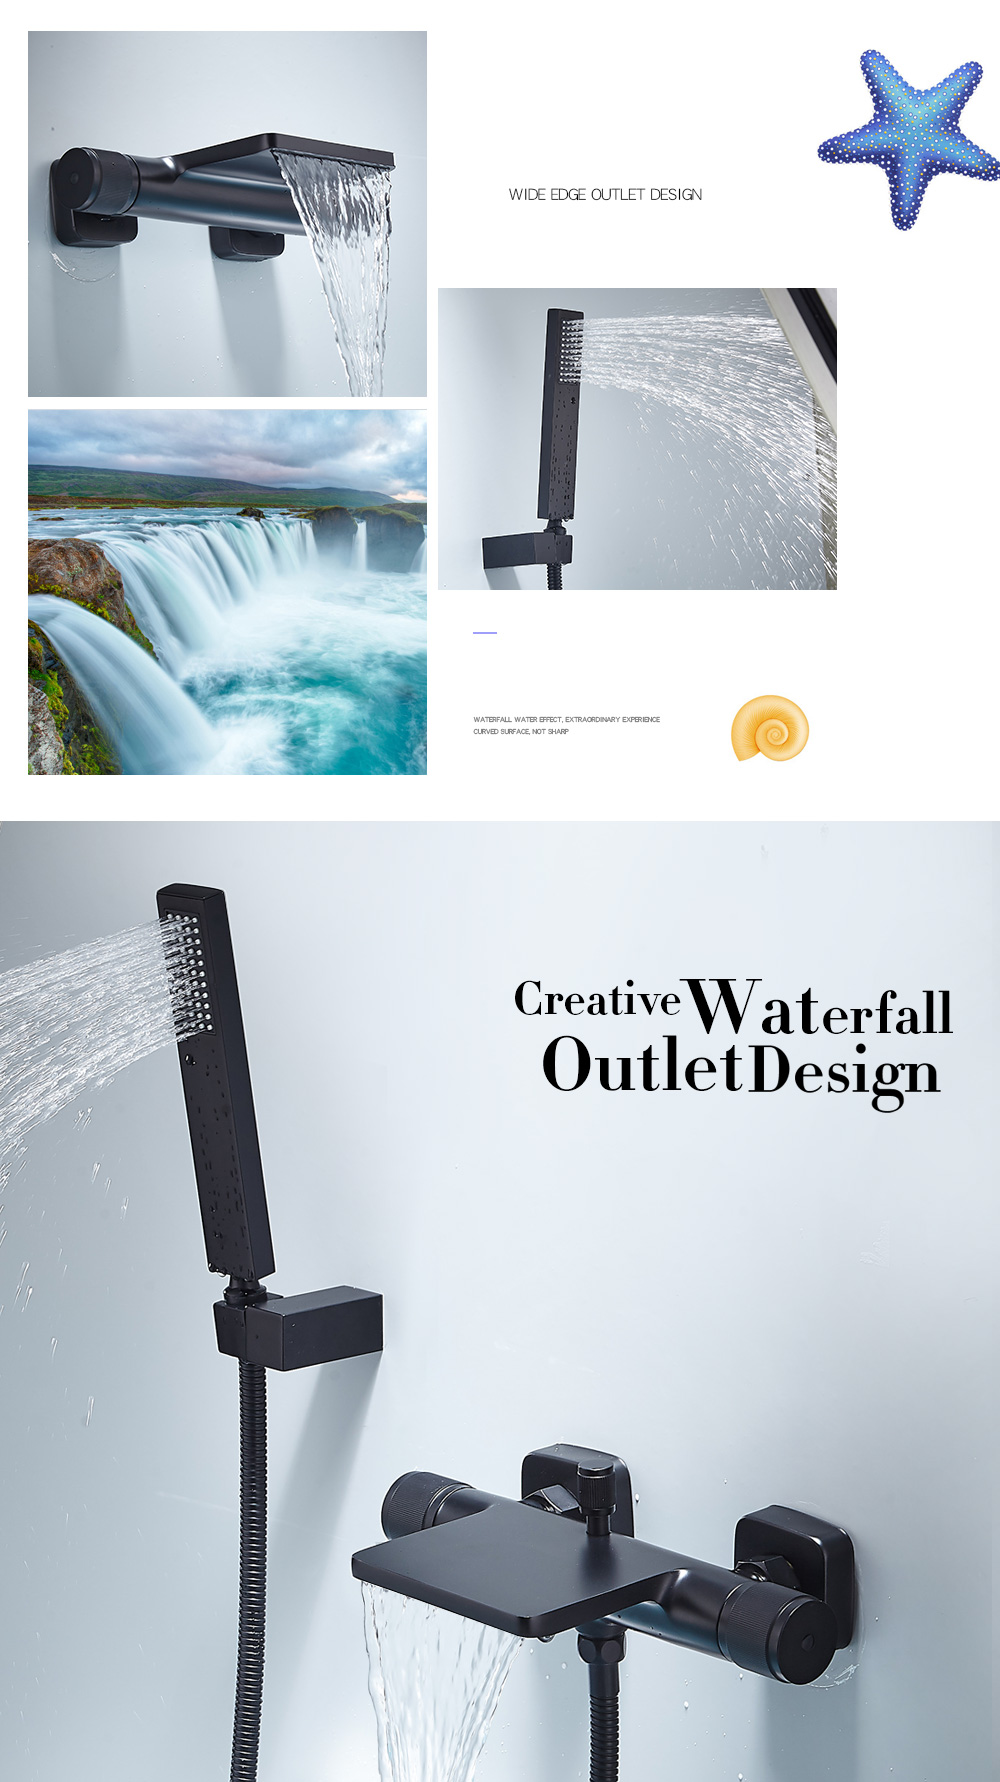 Hee5a8316990b469e826c542829196316O Bathtub Shower Faucet Mixer Solid Brass Black Wall Mount Shower Faucet With Hand Shower Bathroom Waterfall Bathub Faucet WB1620